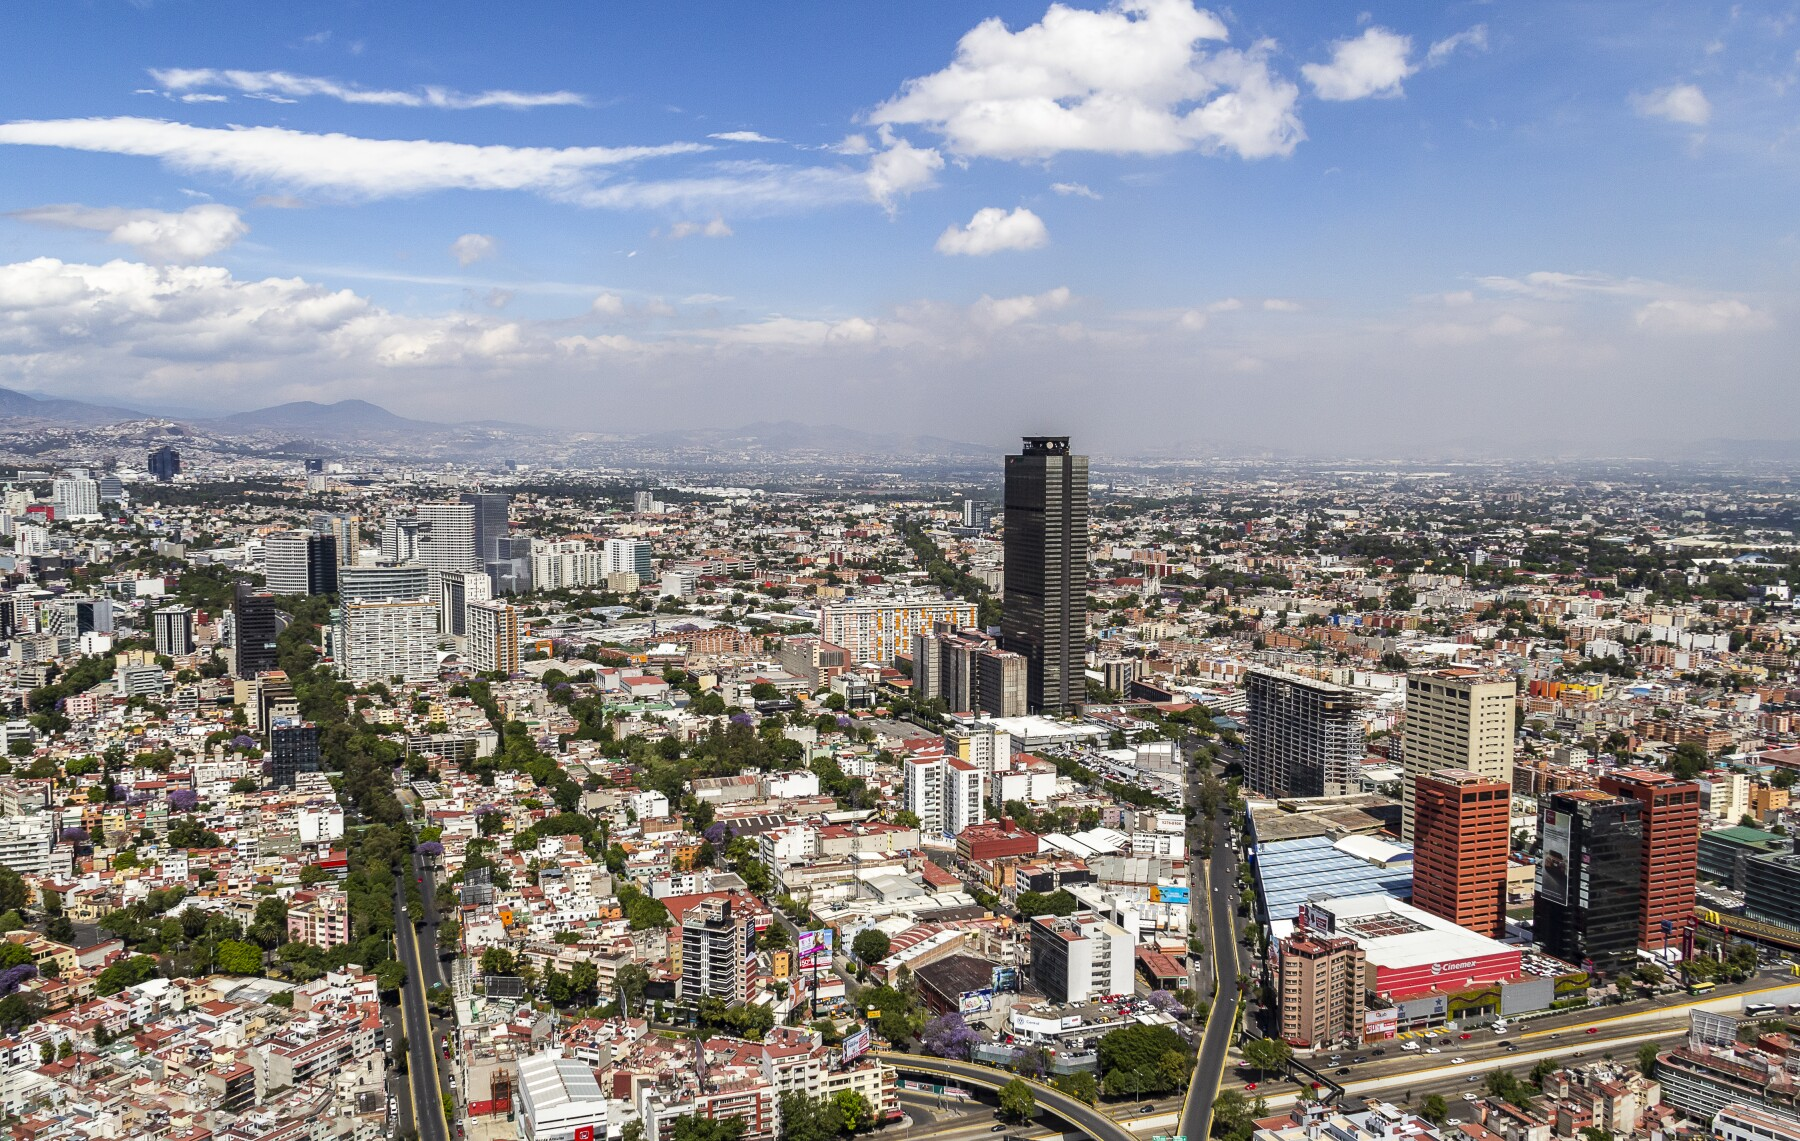 Aerial view of Mexico City over western Anzures district